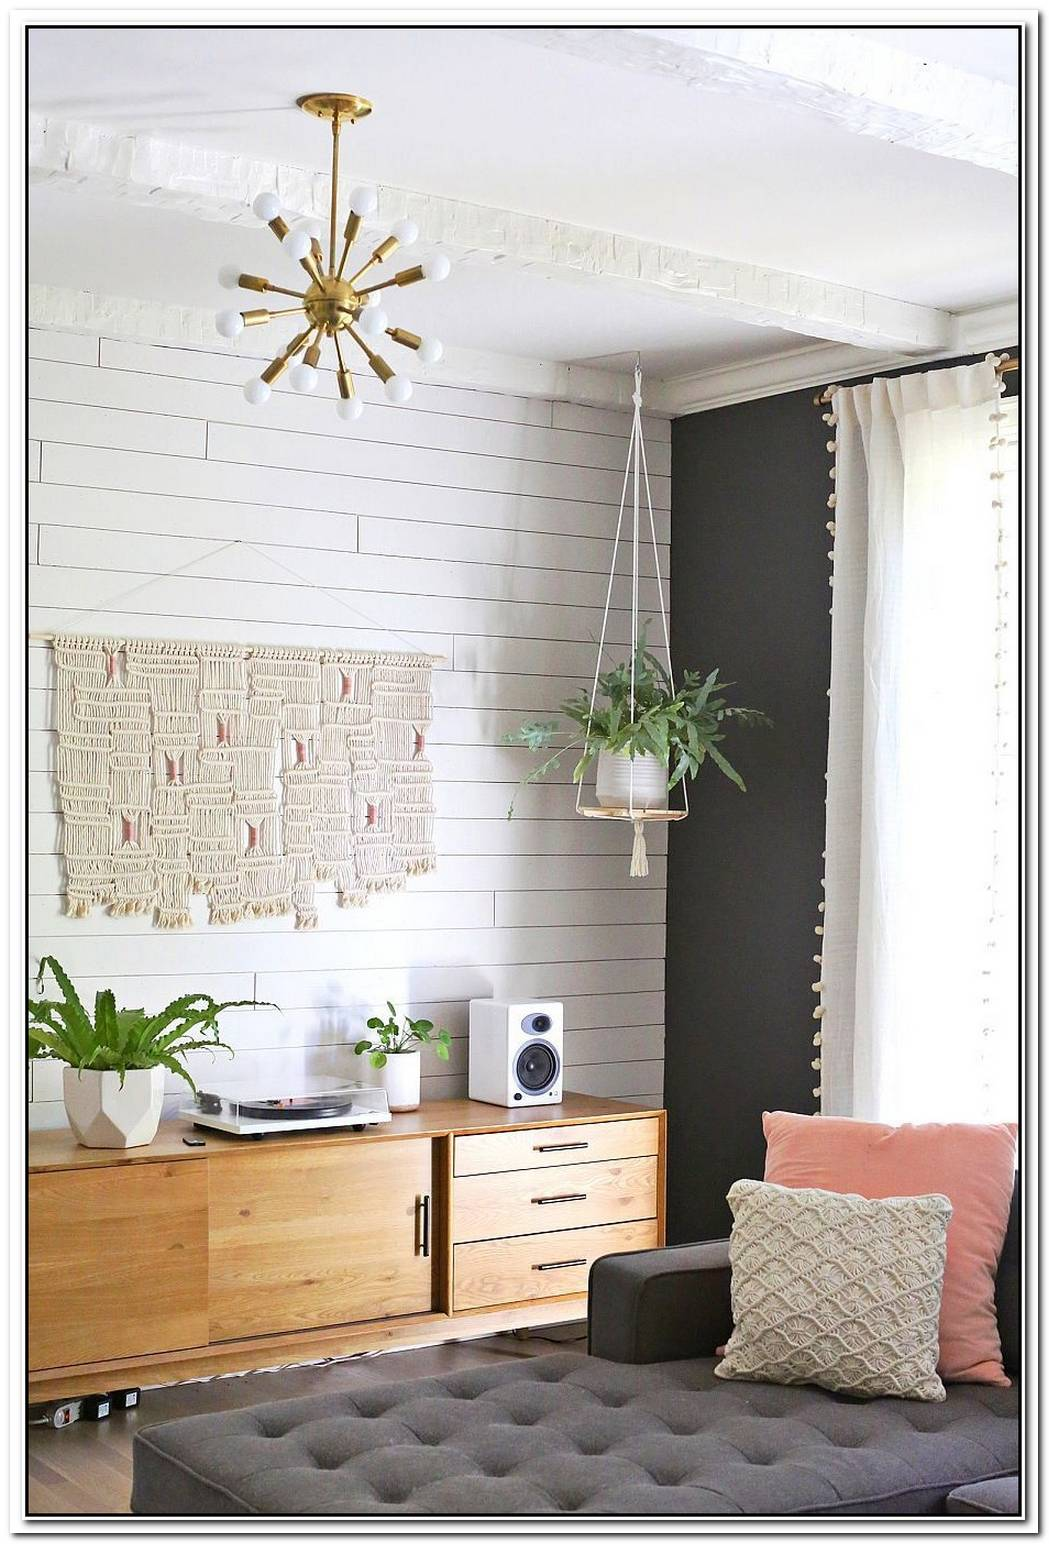 Saving Floor Space10 Stylish DIY Hanging Shelf Ideas